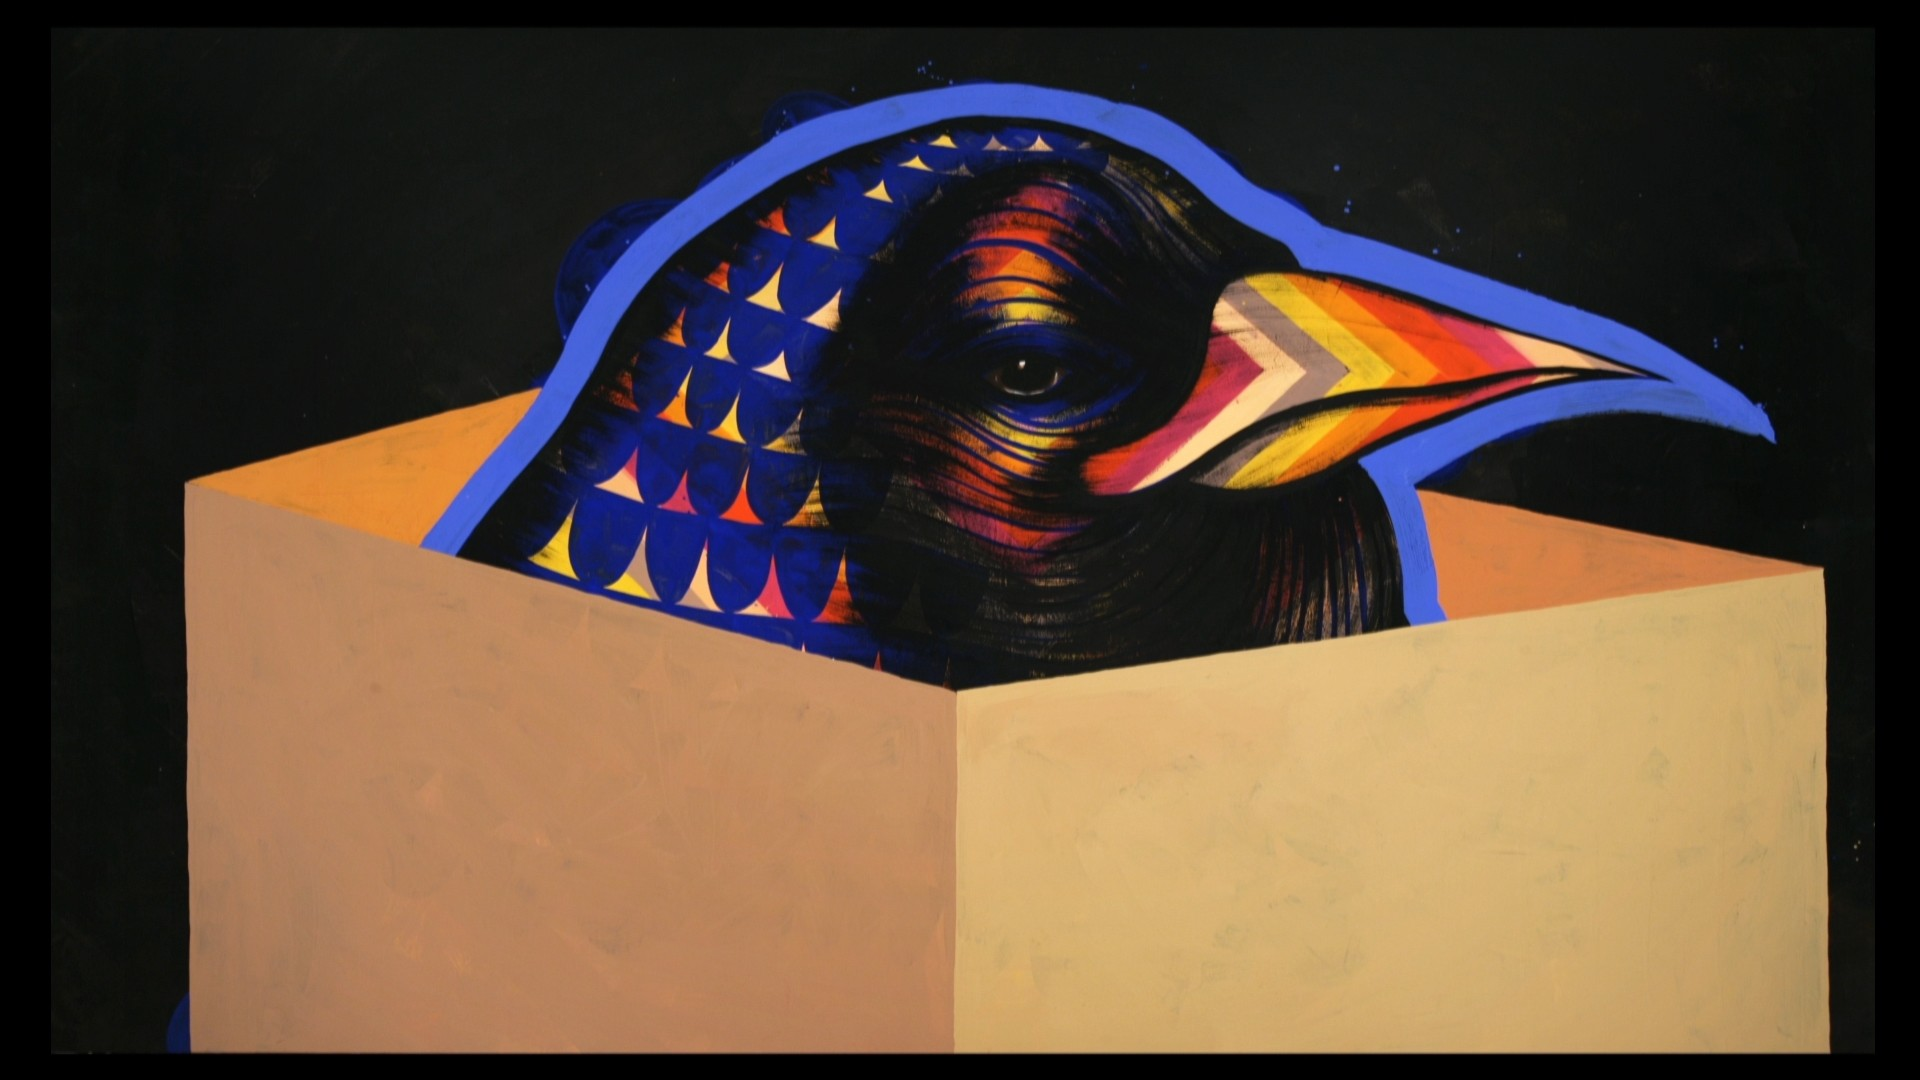 illustrated bird head coming out of box